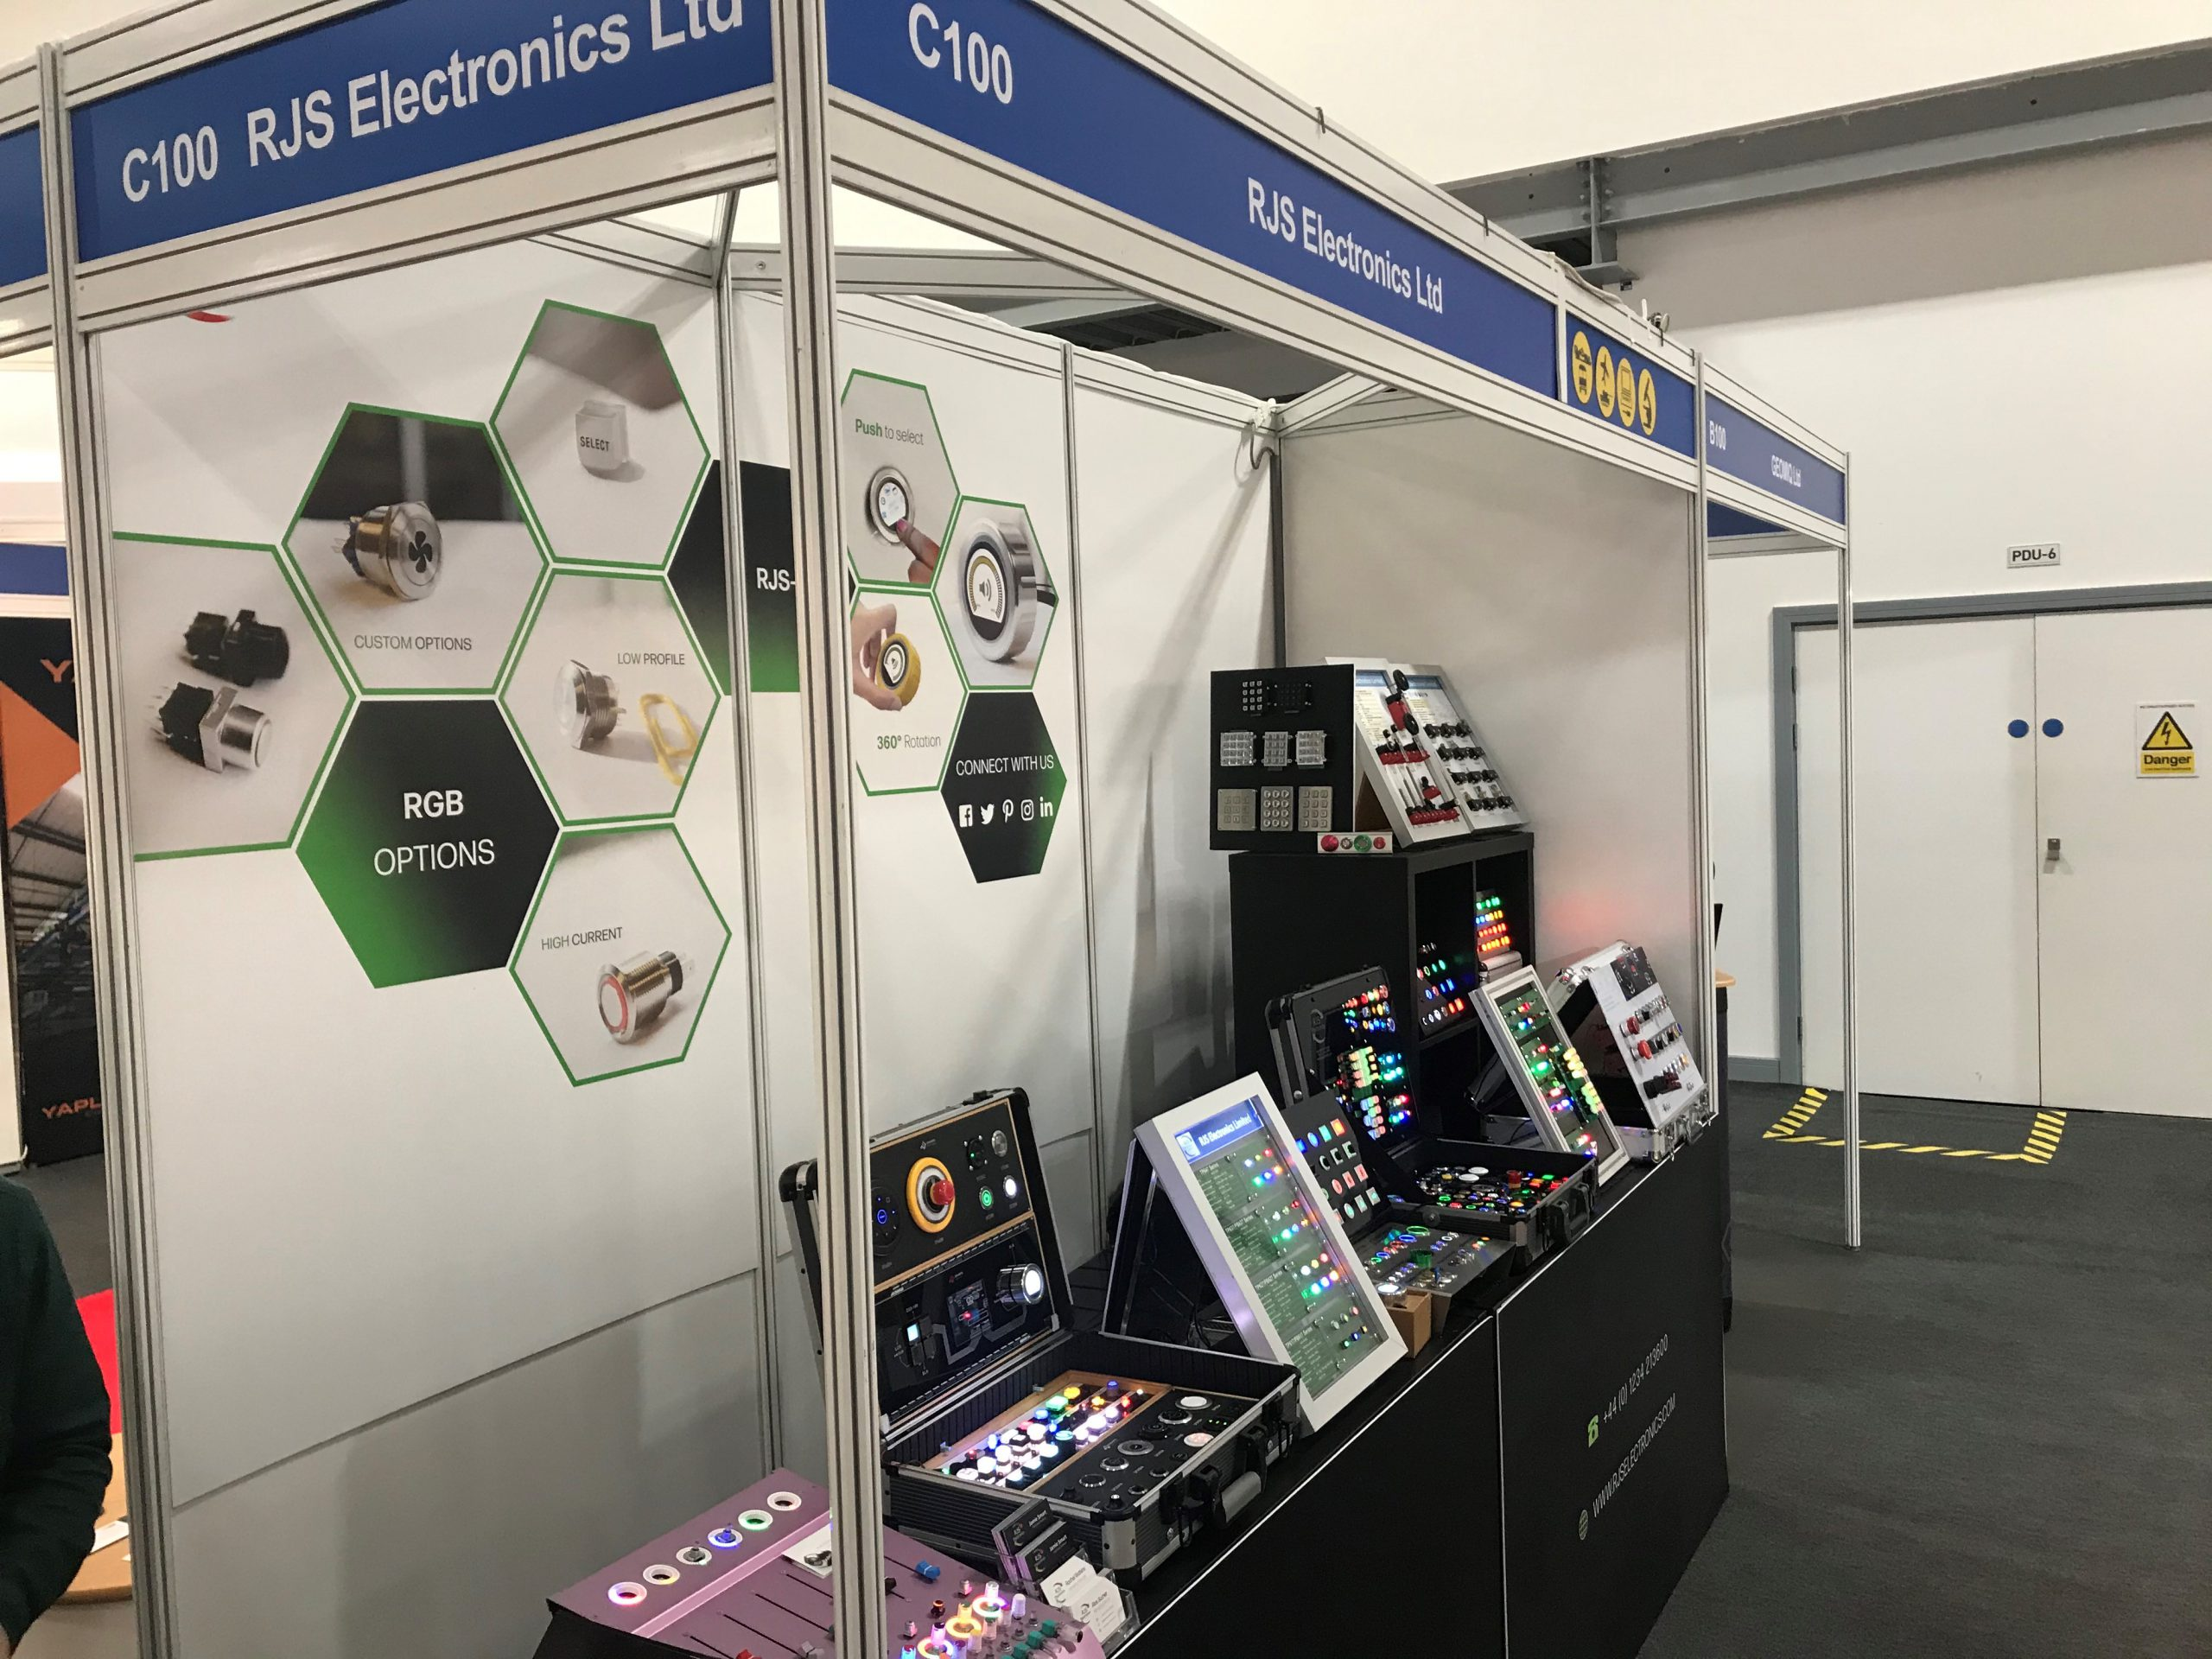 Relays, Switches, Industrial Controls, door entry, key pads, snap-action, gaming, LED Illumination switches. RJS Electronics Ltd.